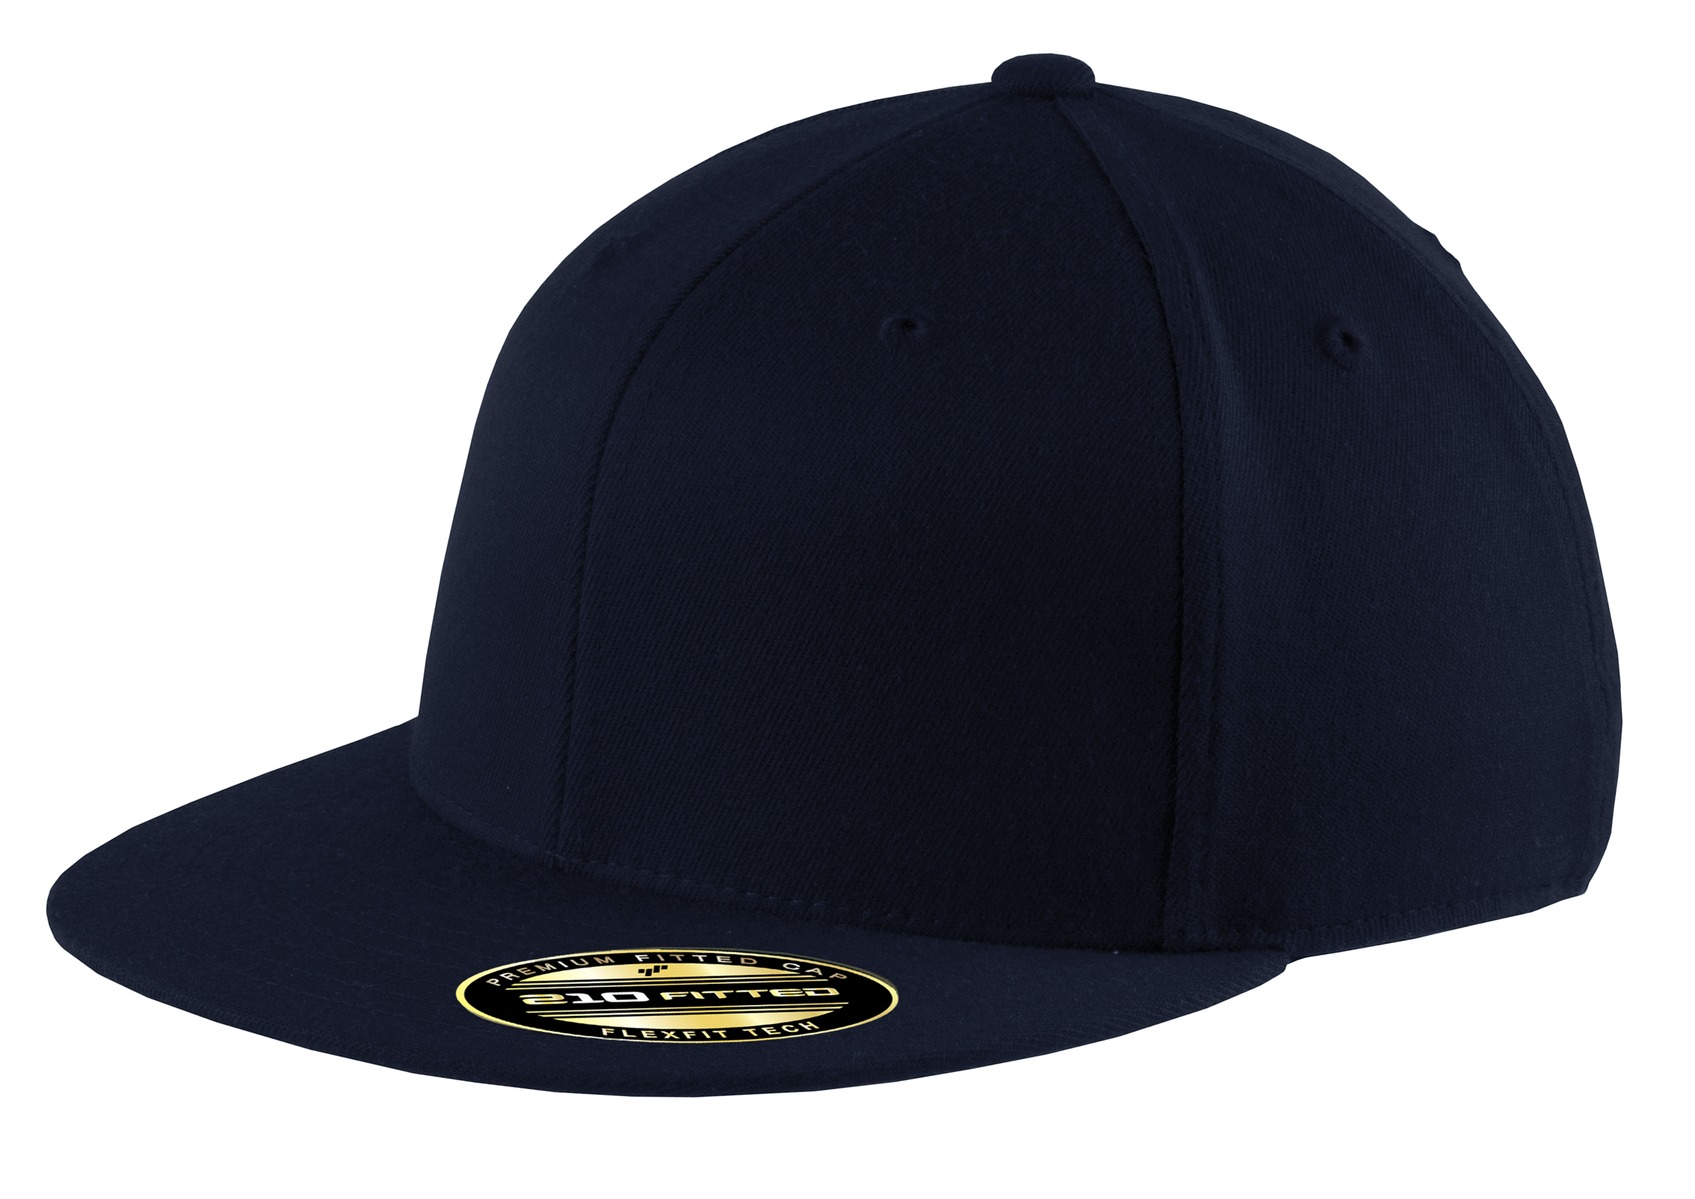 Port Authority ®  Flexfit 210 ®  Flat Bill Cap. C808 - Navy